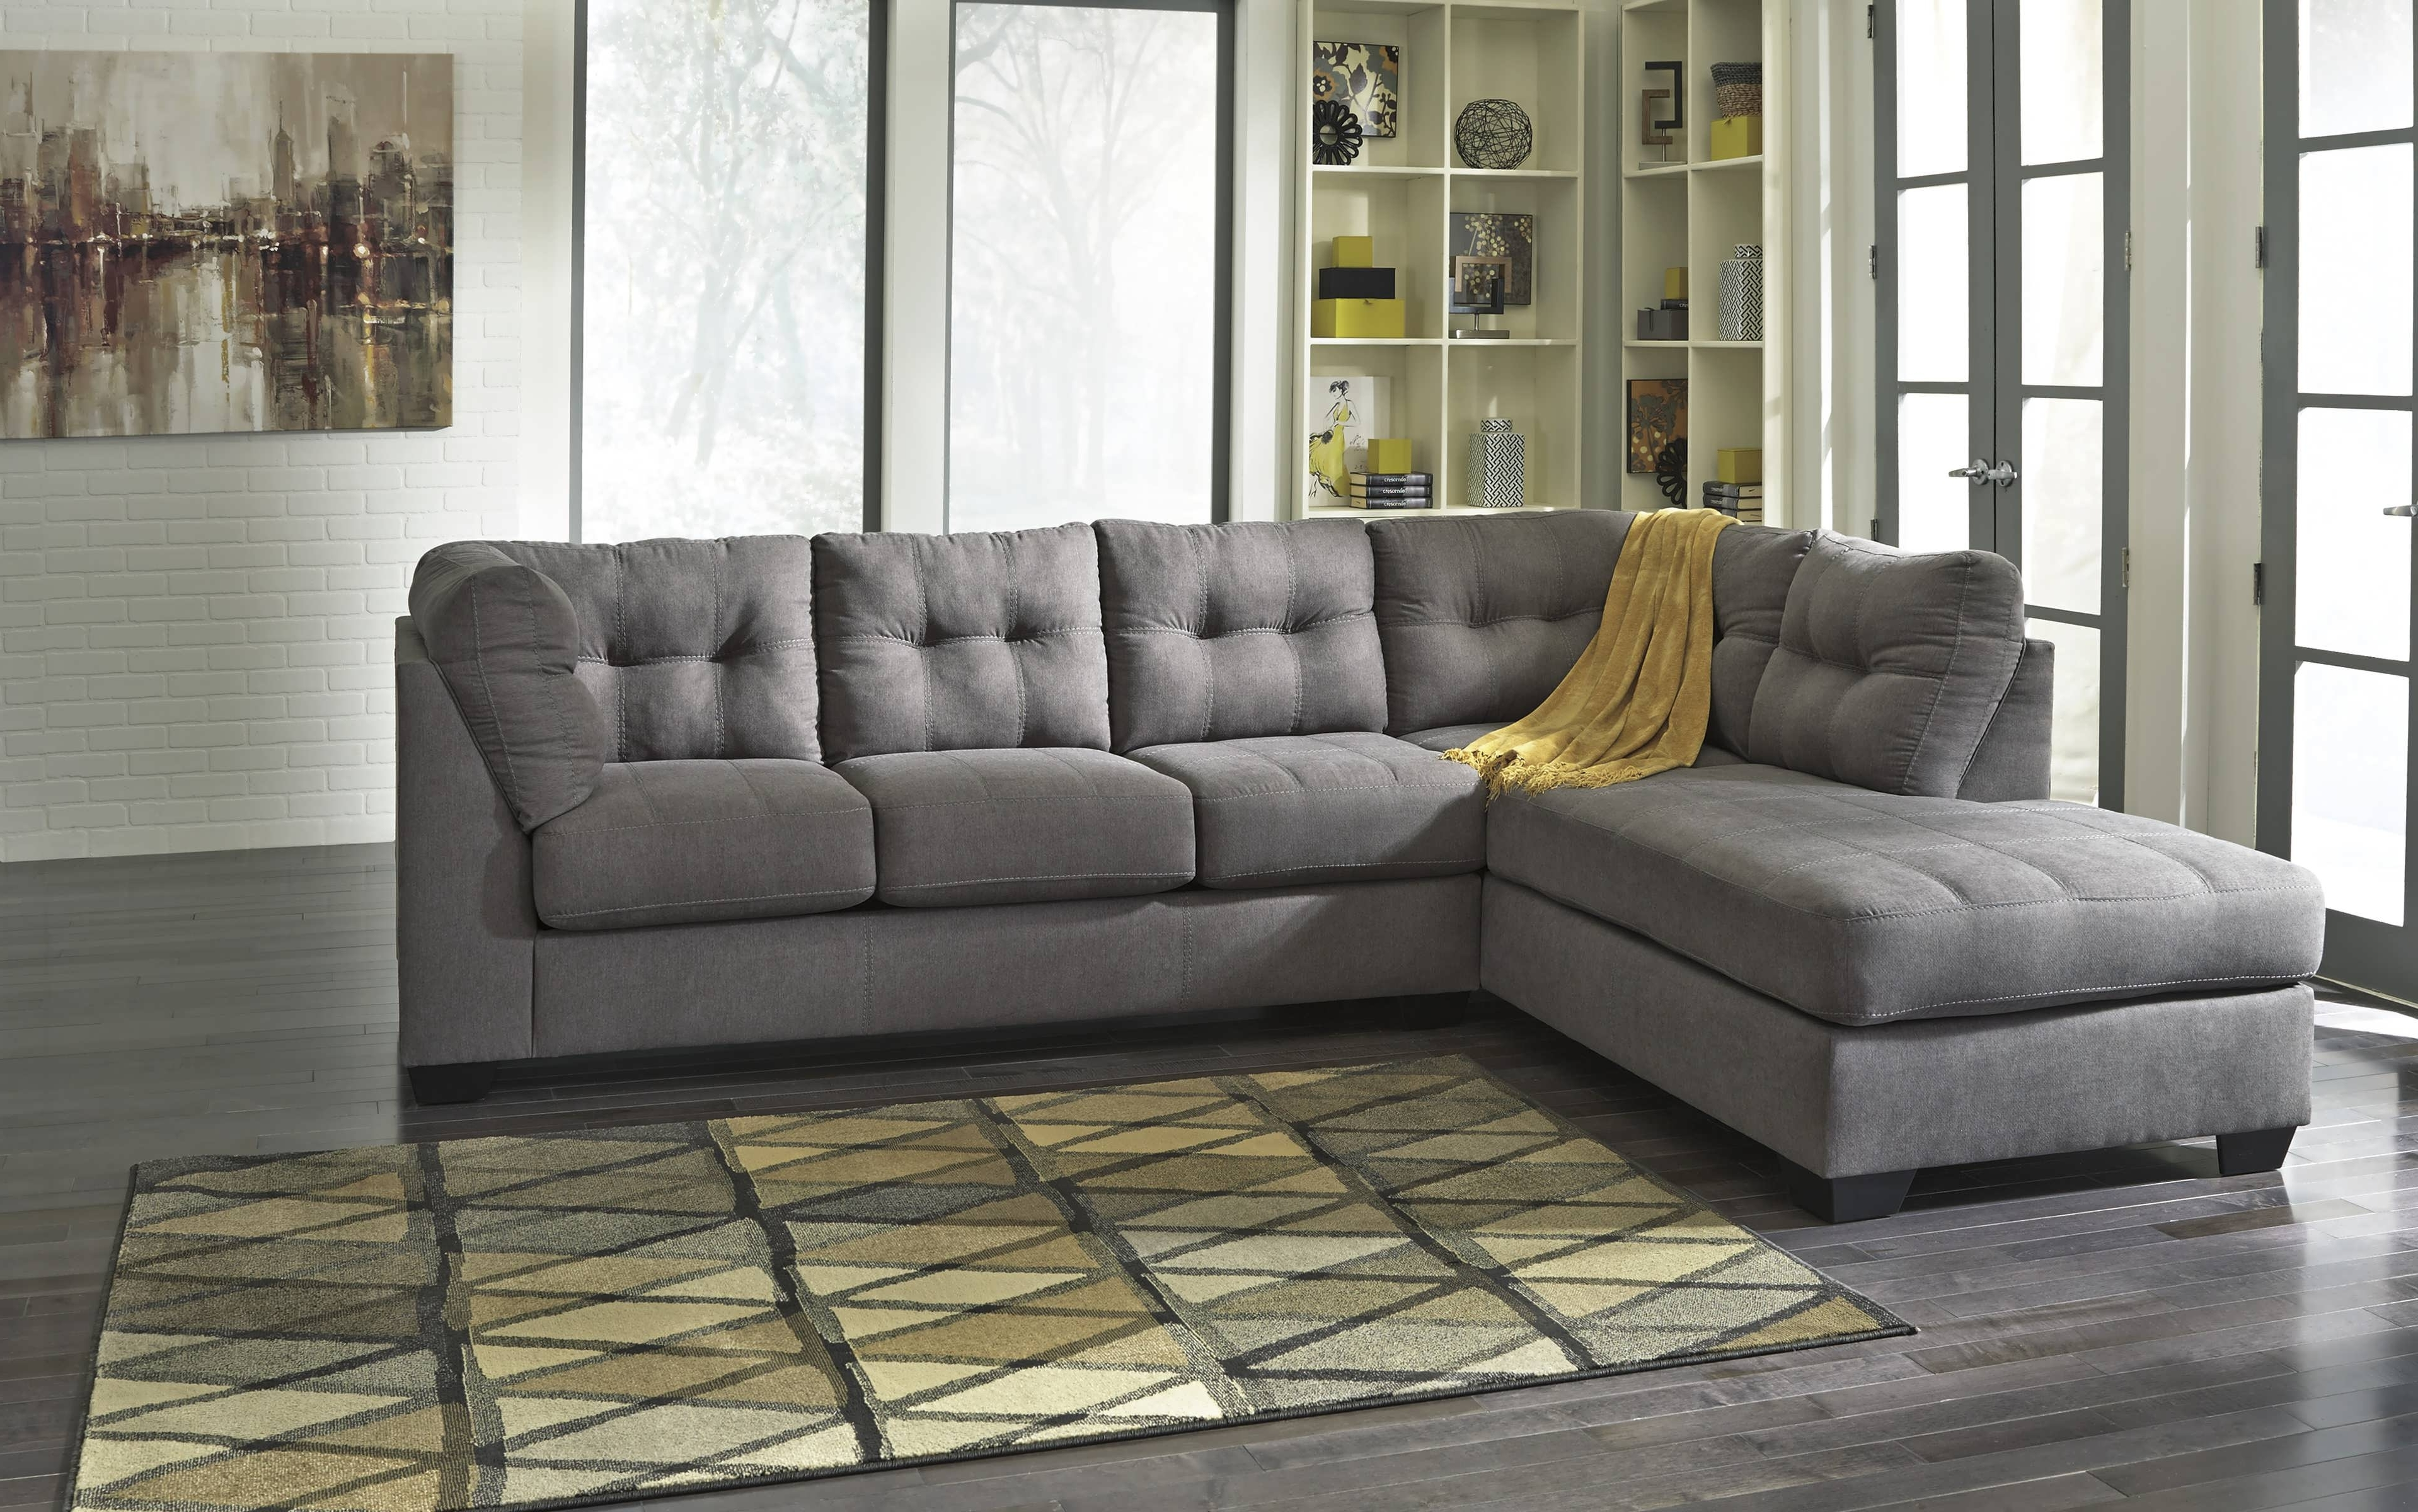 Well Liked Sofa : Small Sleeper Sofa Sectional Sleeper Sofa With Chaise Pertaining To Chaise Sectionals (View 15 of 15)